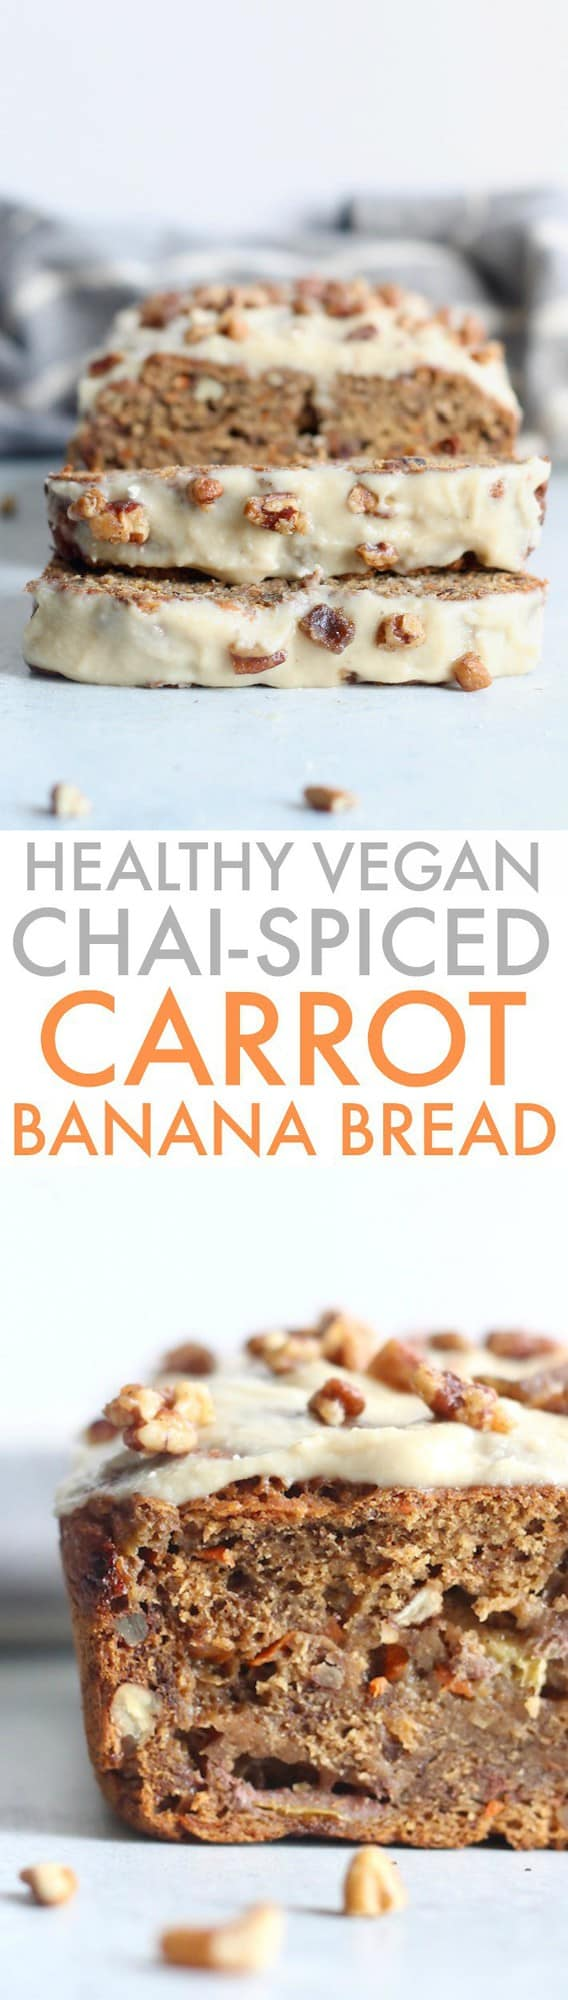 The most epically moist and delicious Healthy Chai-Spiced Carrot Cake Banana Bread loaded with warming spices and topped with the most amazing cream cheese frosting. 100% whole grain and vegan!